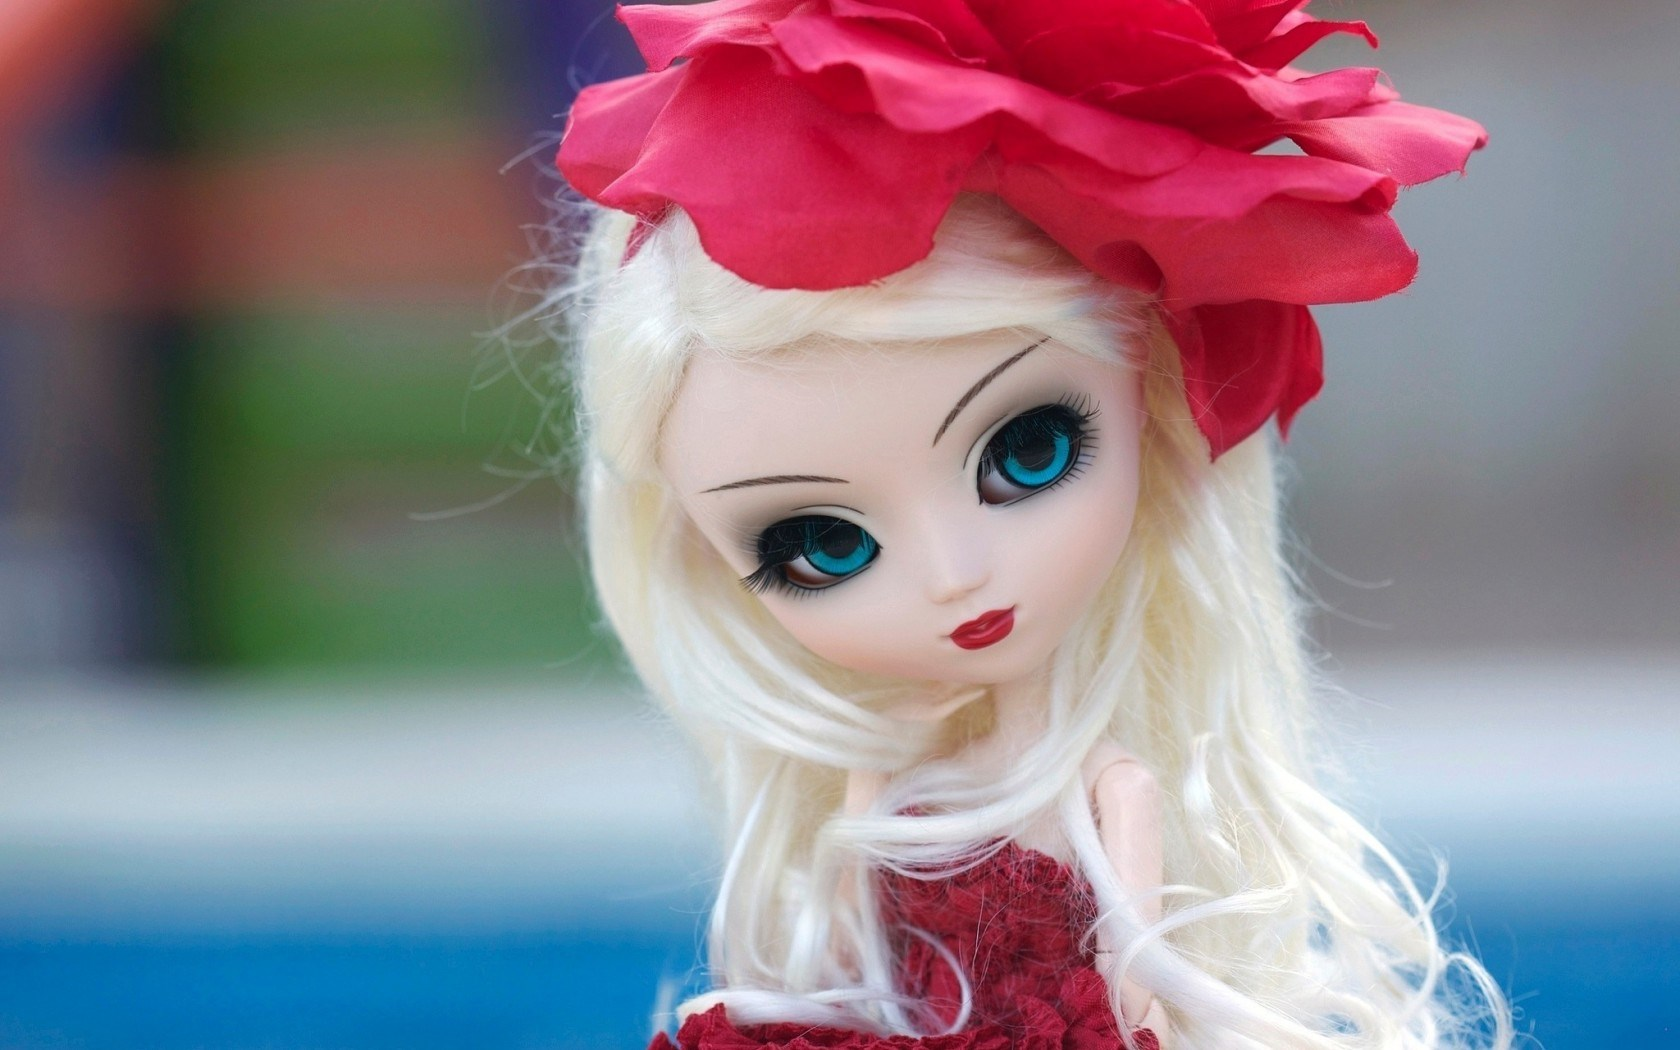 beautiful toy doll wallpaper 42434